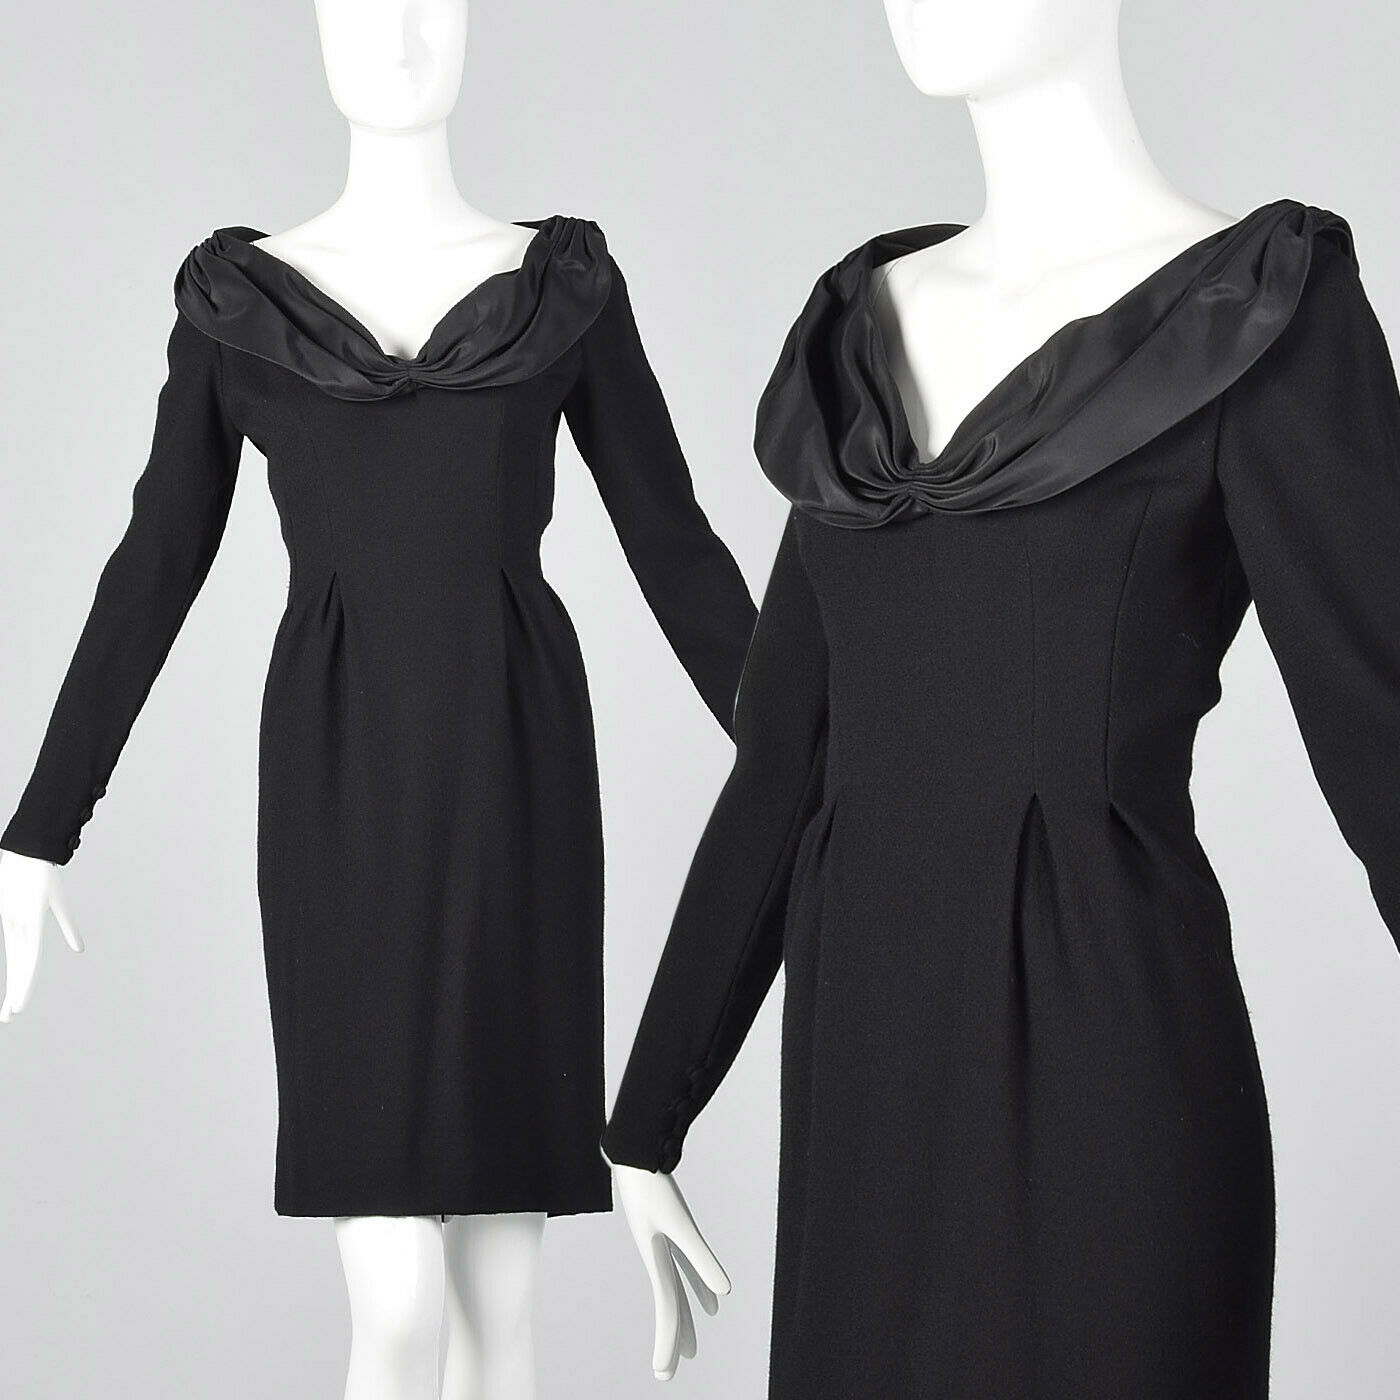 M 1980s Bill Blass Long Sleeve Pencil Dress Winter Simple Vintage Wool 80s VTG